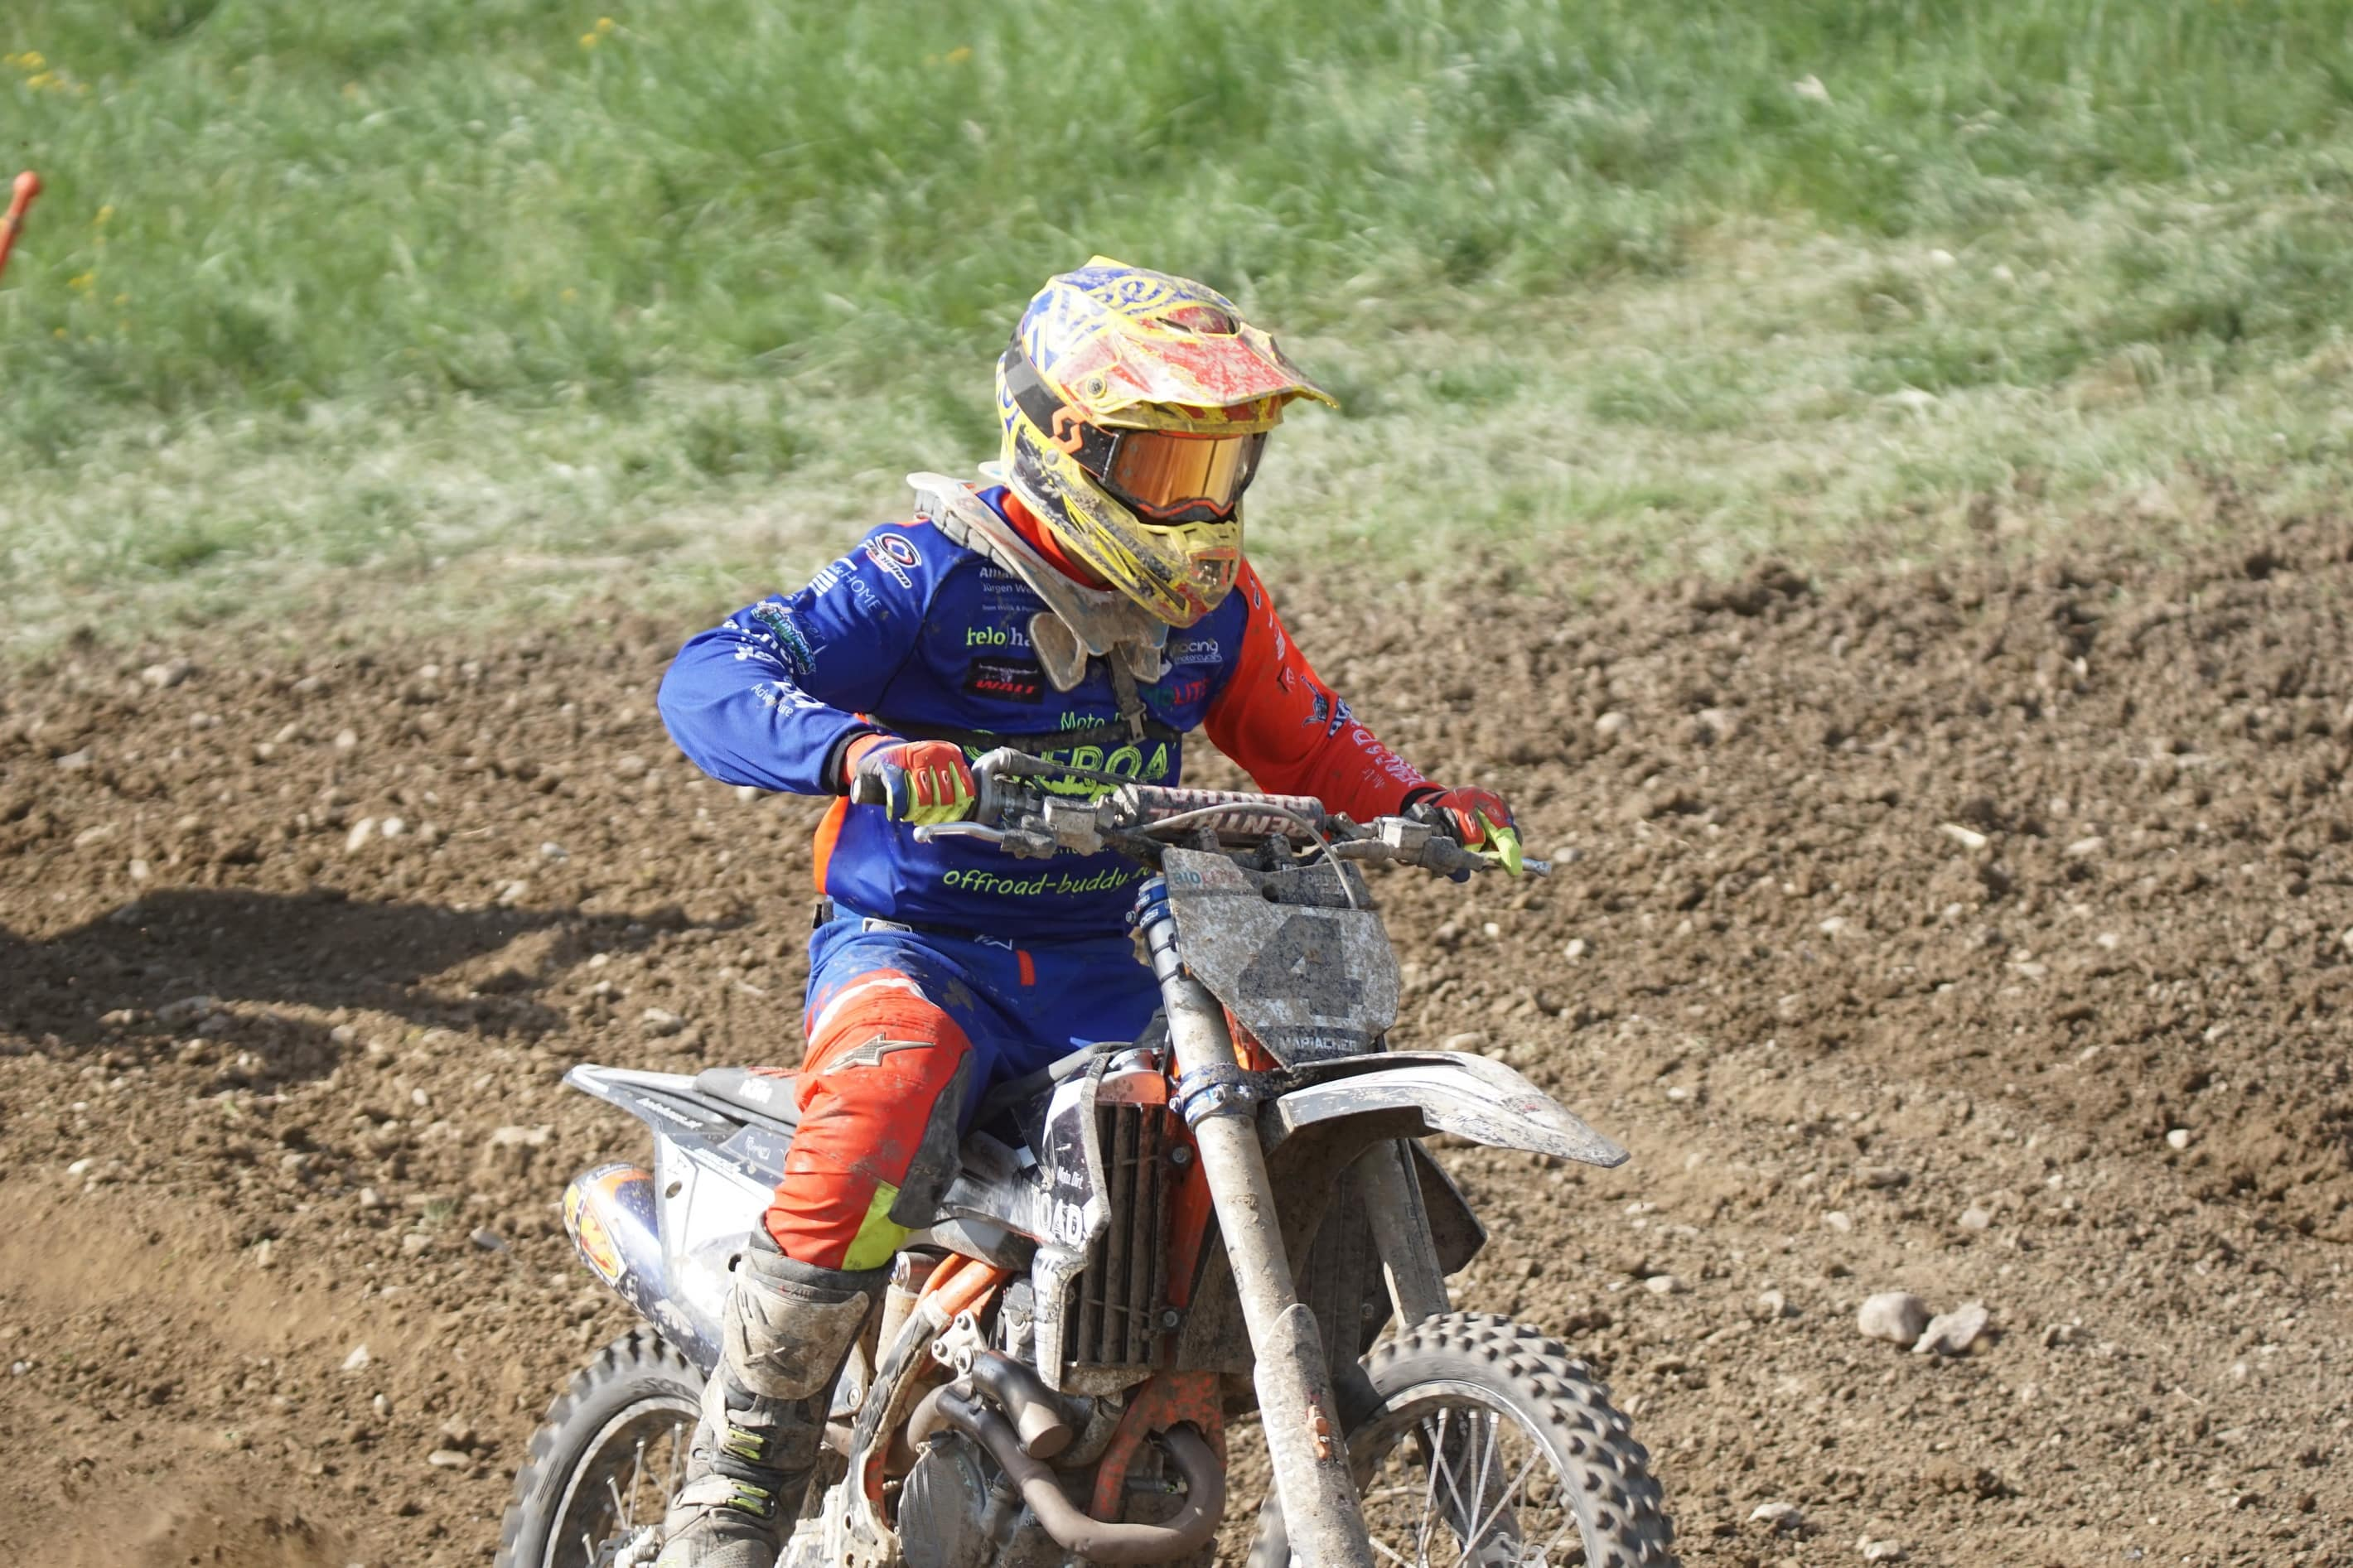 DSC 880_Moto Cross Sittendorf Teil1 am 29.04.2018